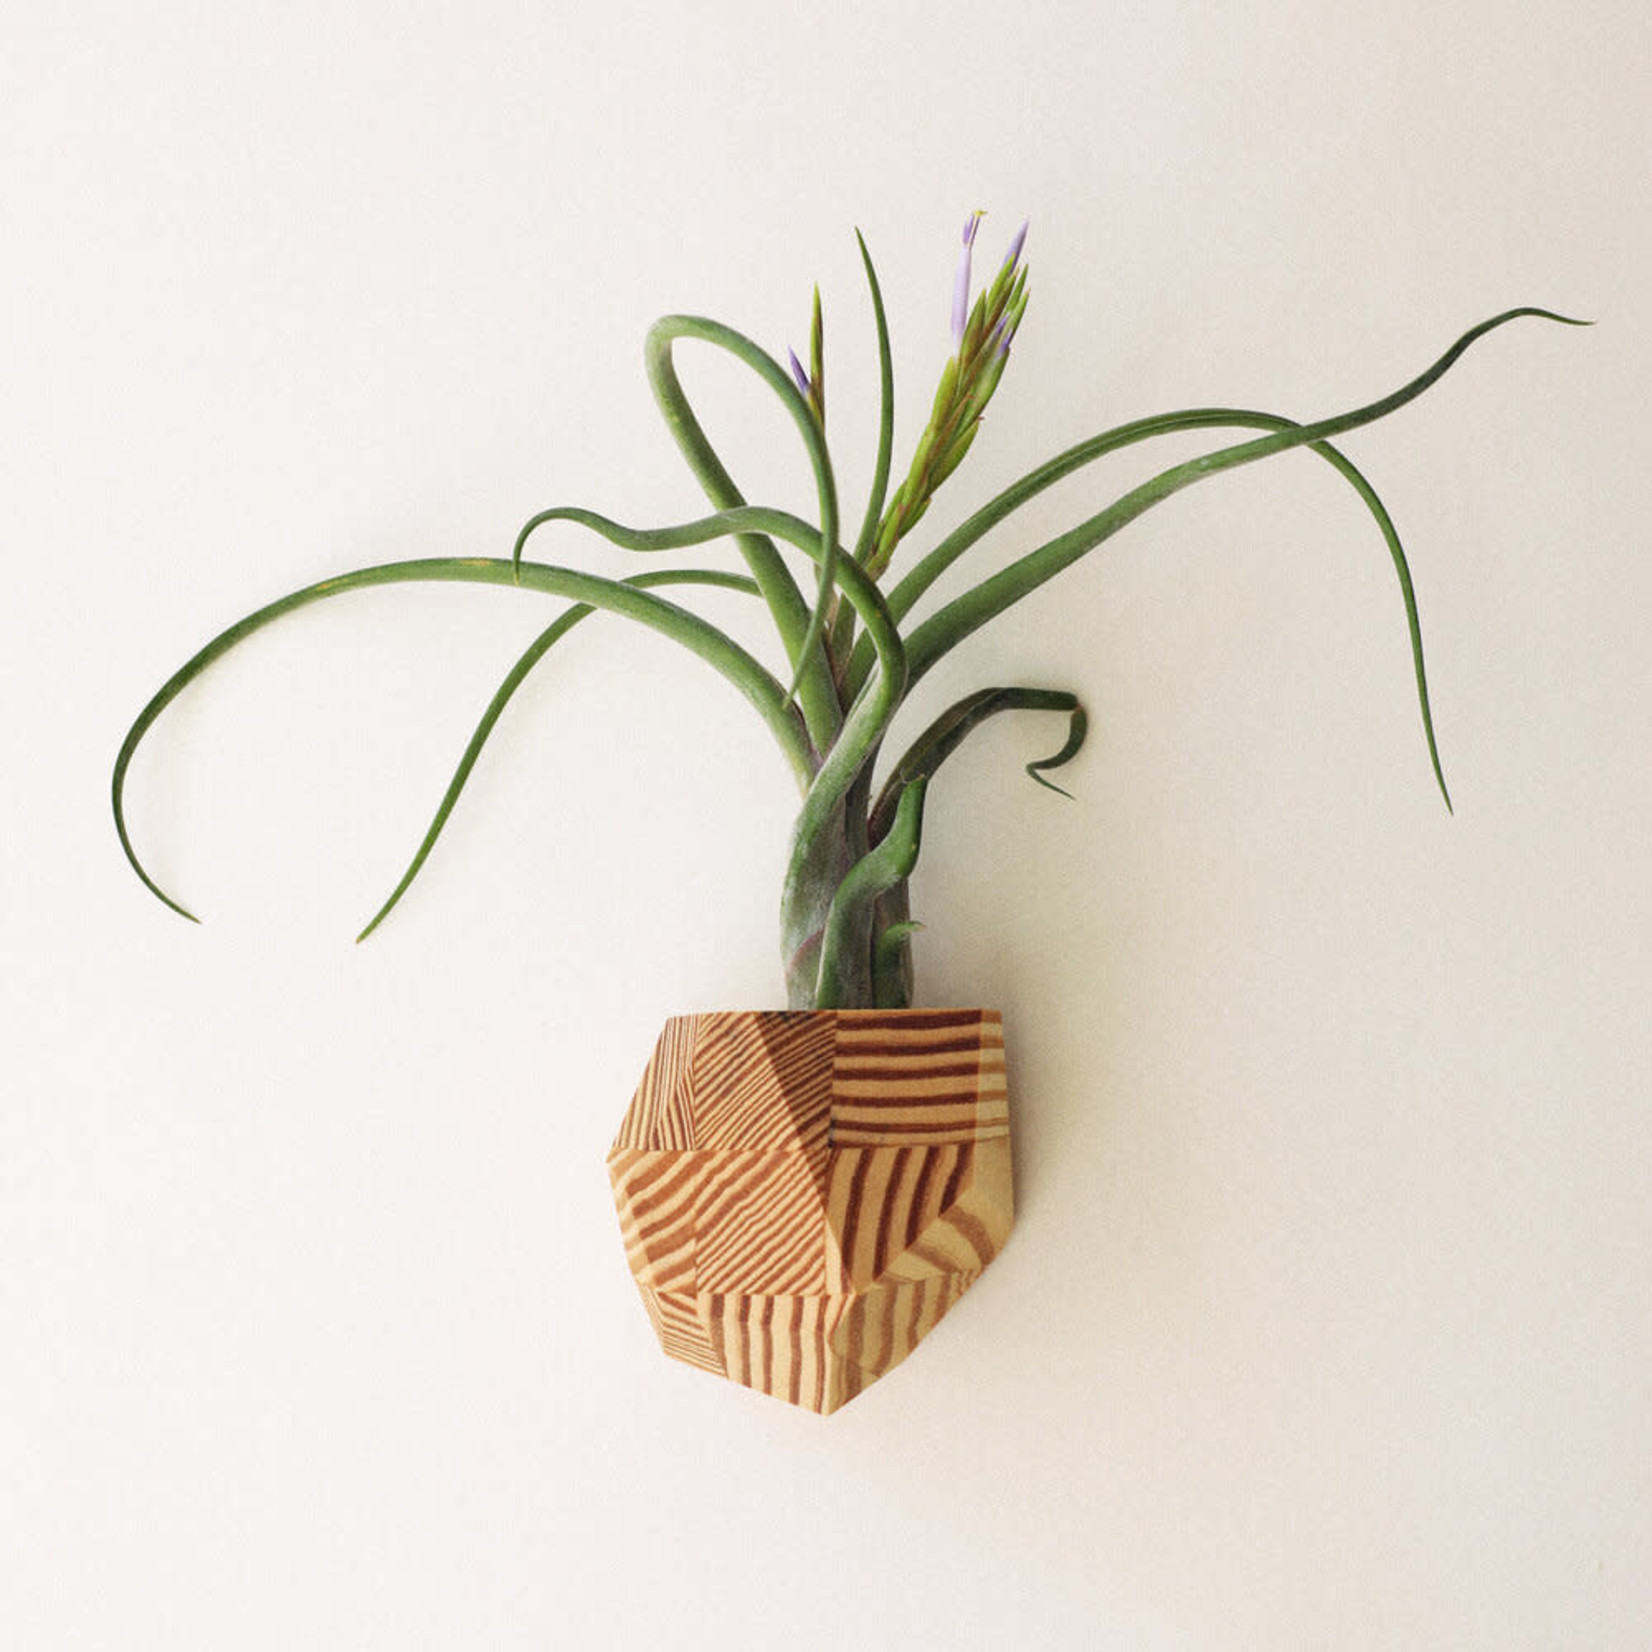 Untitled Co. Untitled Co. Geometric Wood Air Planter - More Options Available